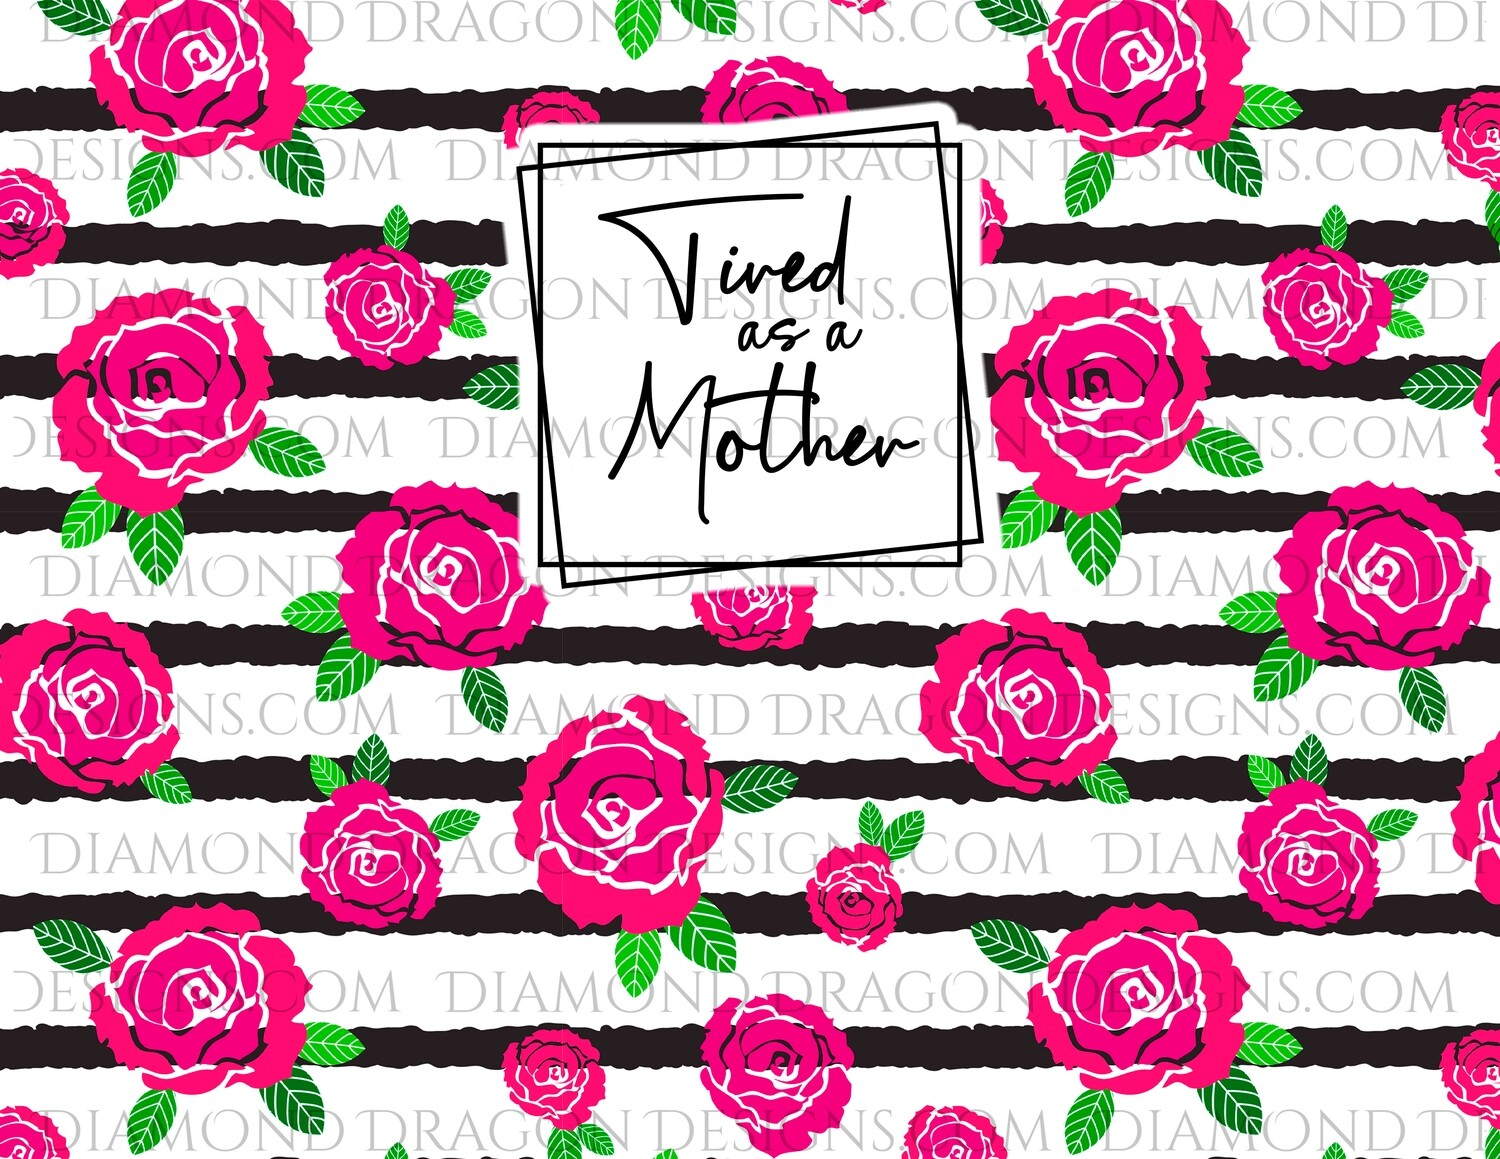 Full Page -  Floral Rose Stripe, Tired as a Mother, Full Page Wrap, 8.5'' x 11'', Digital Image